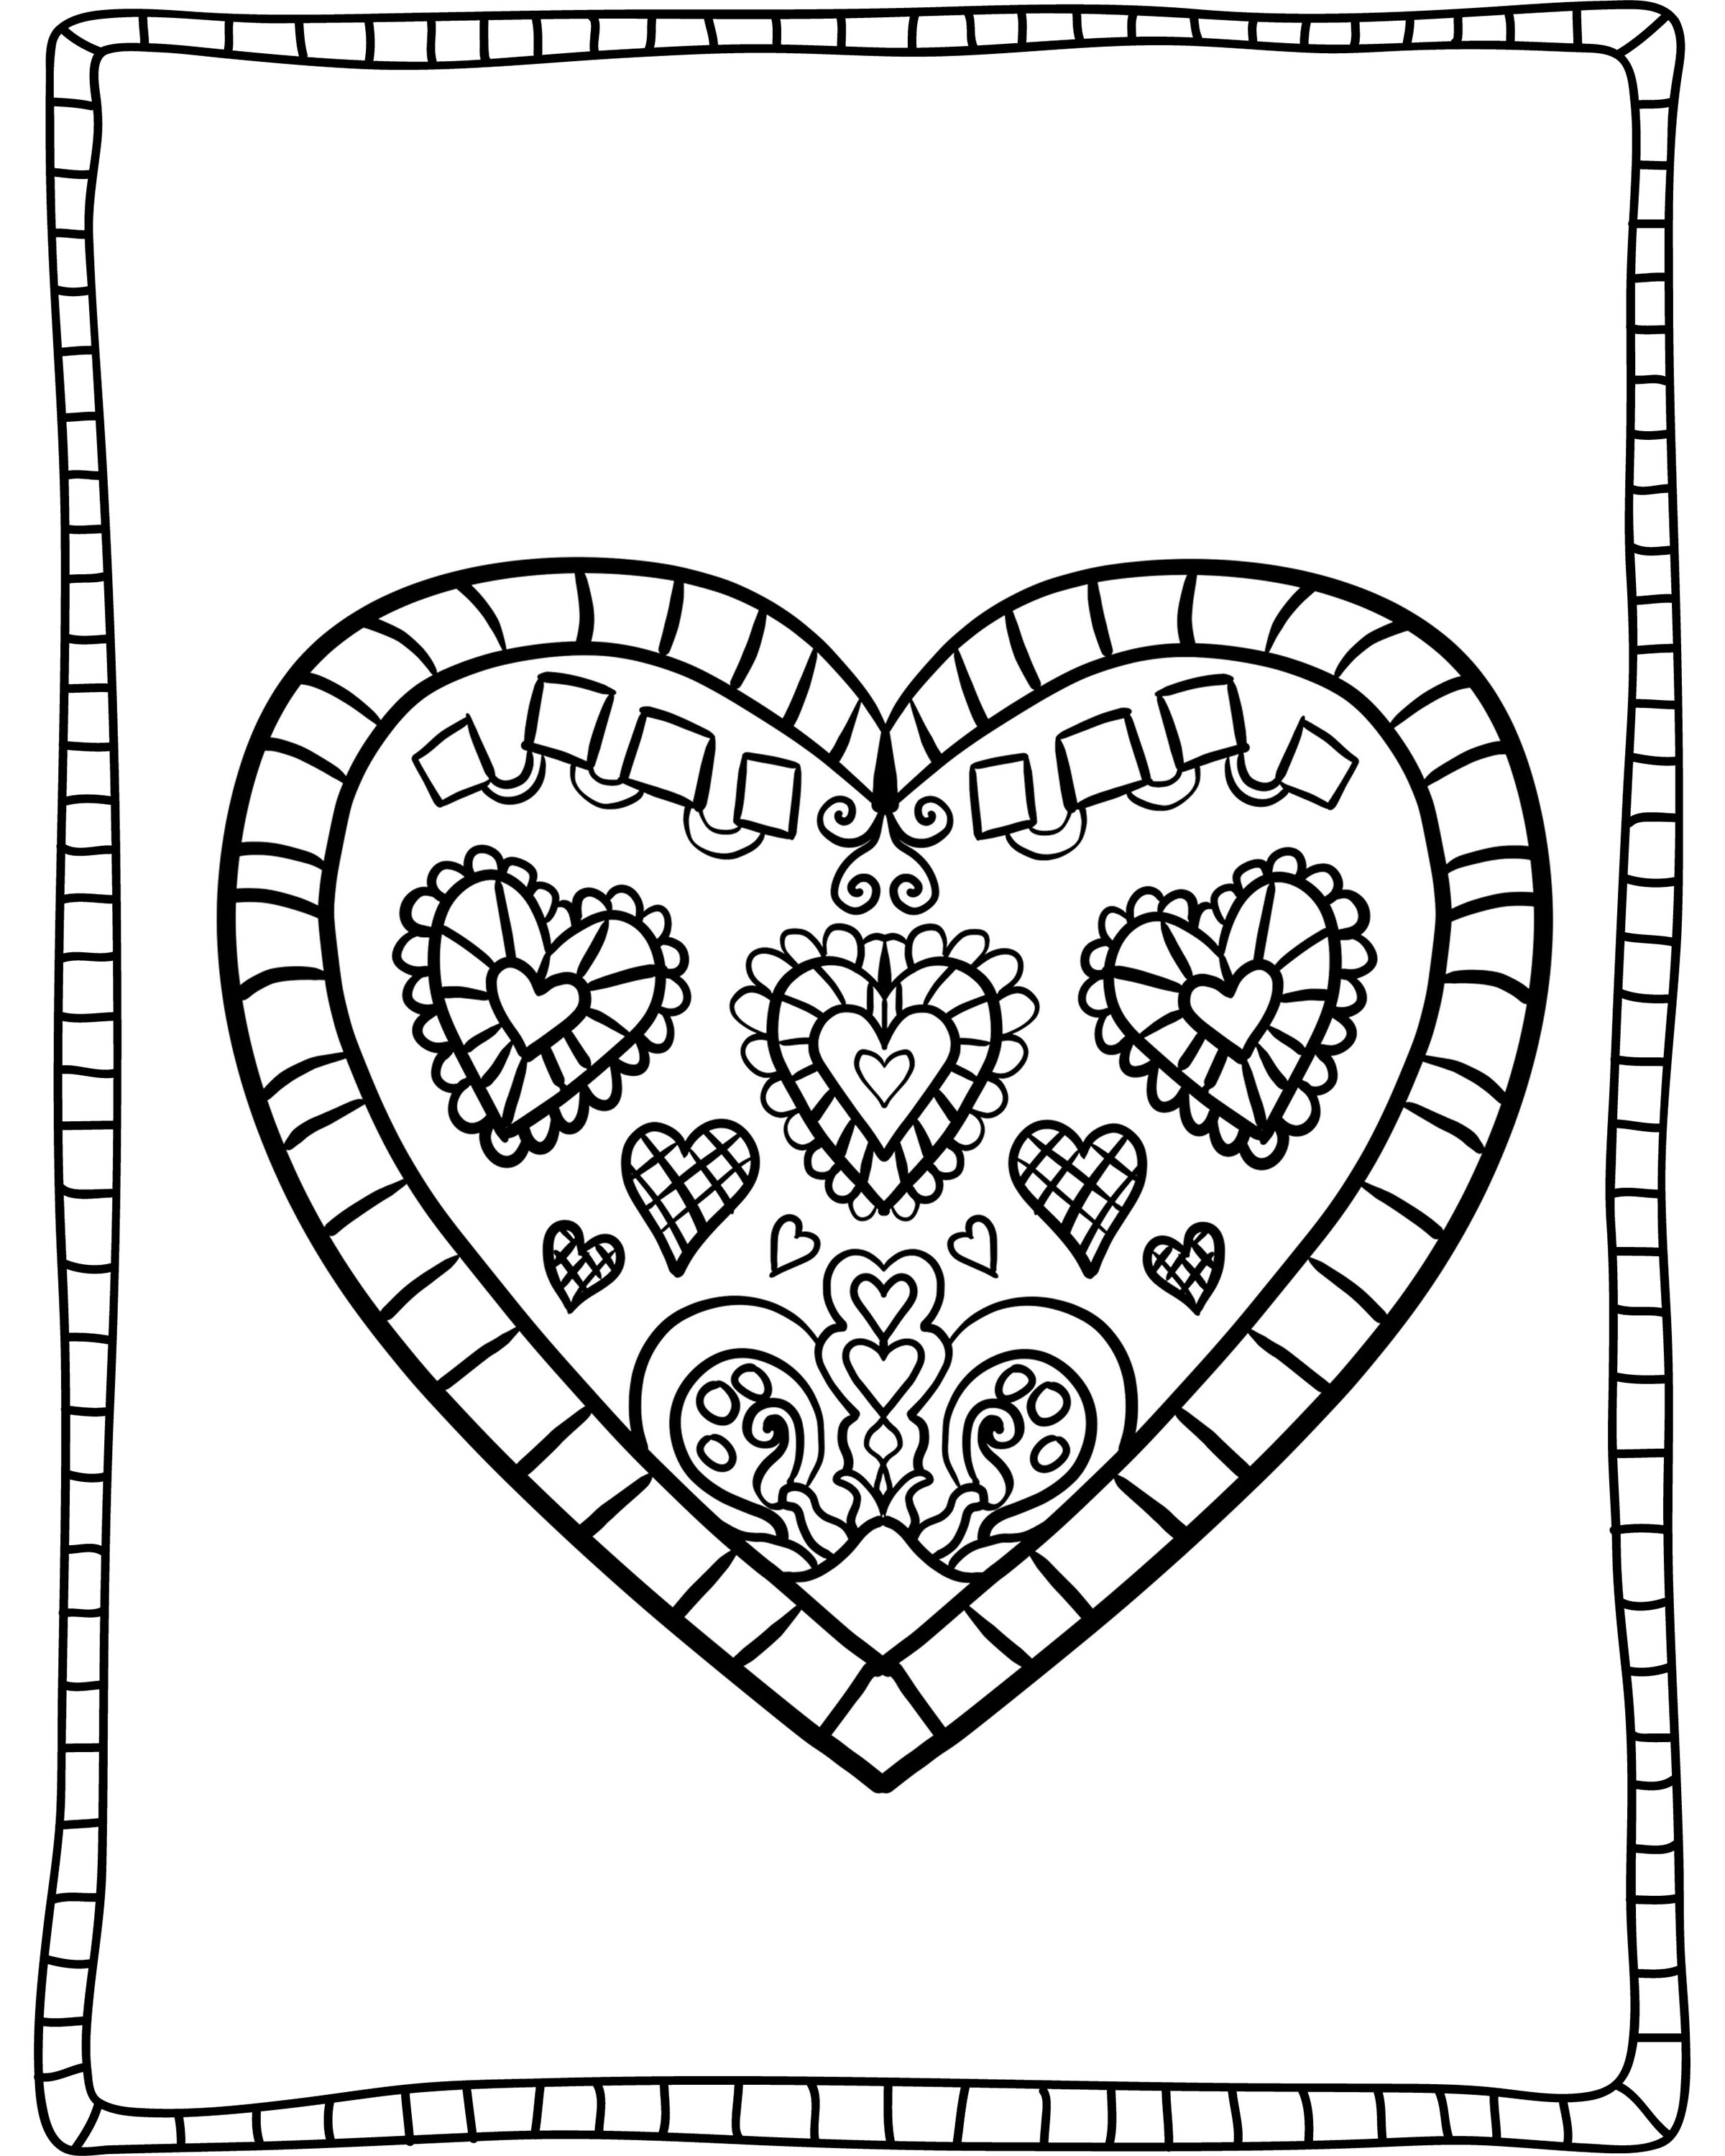 Valentines day coloring pages for adults best coloring for Coloring page valentine